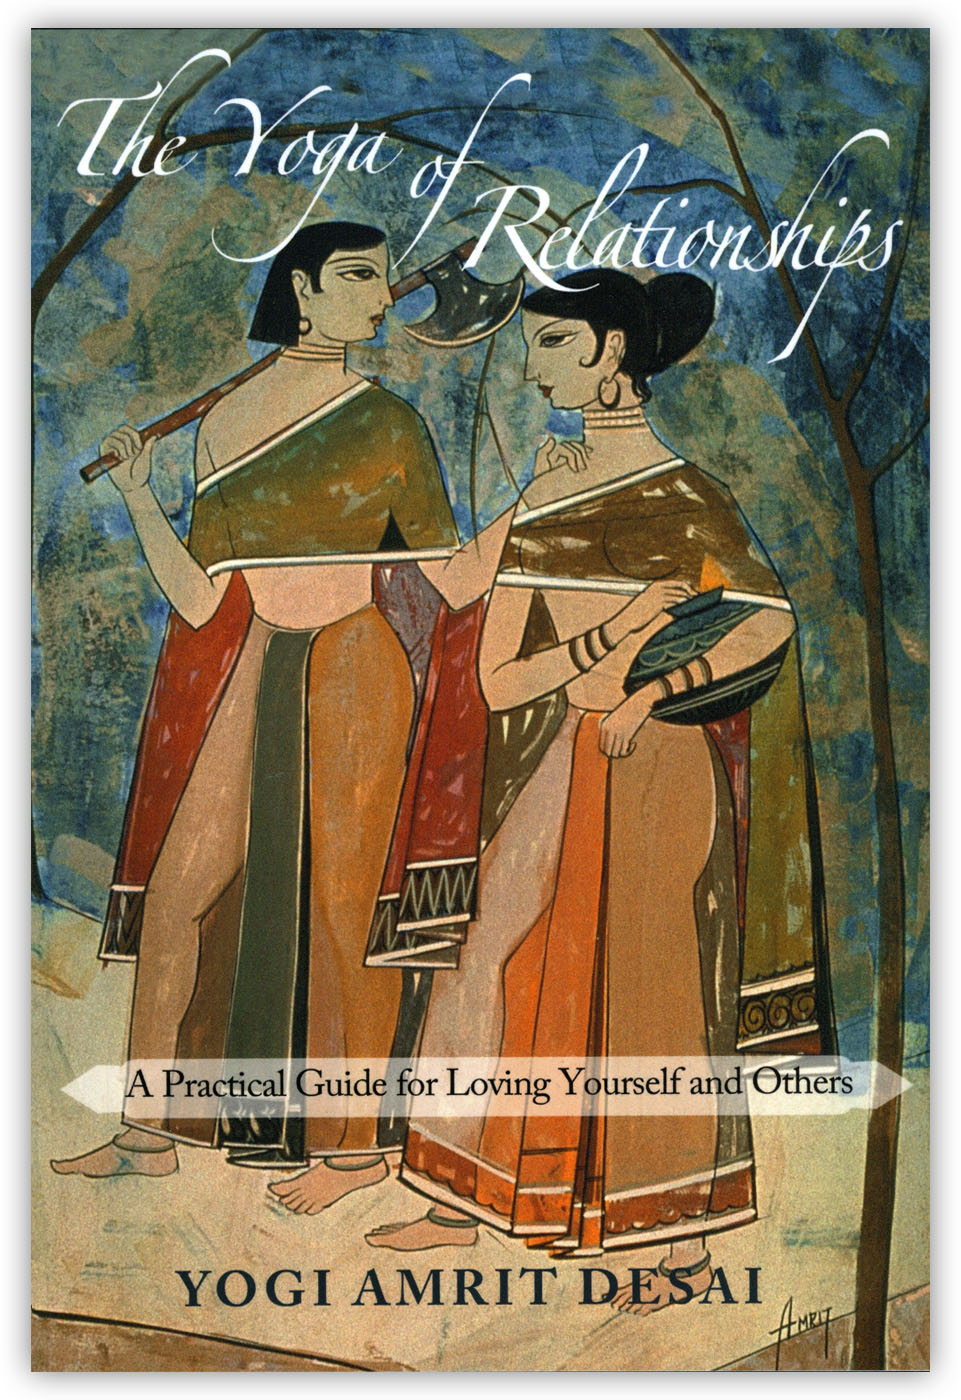 The yoga of relationships a practical guide for loving yourself and the yoga of relationships a practical guide for loving yourself and others by yogi amrit desai paperback and ebook iam fandeluxe Choice Image